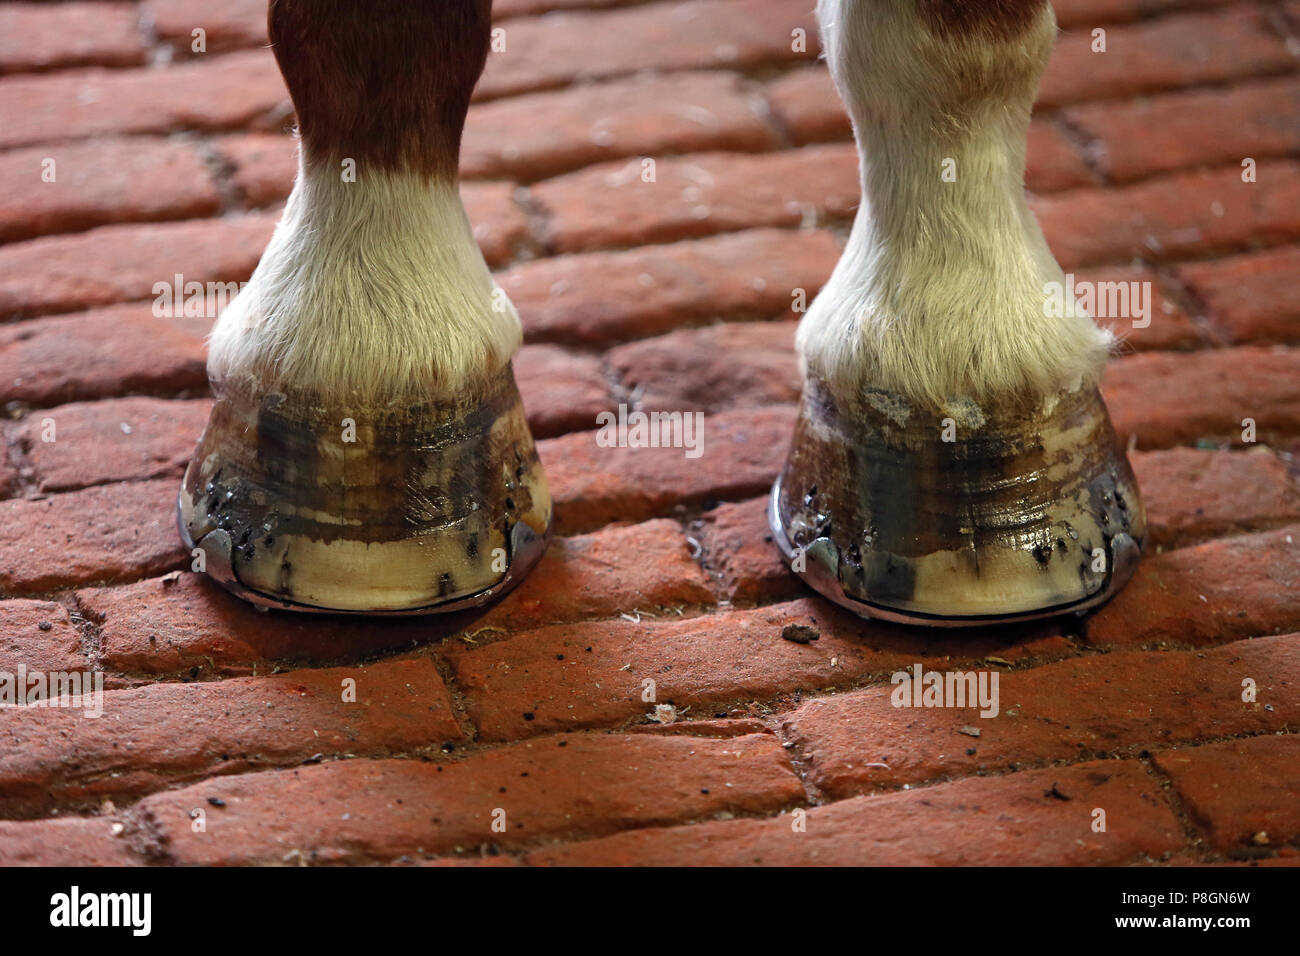 Neustadt (Dosse), fresh studded horse hooves - Stock Image